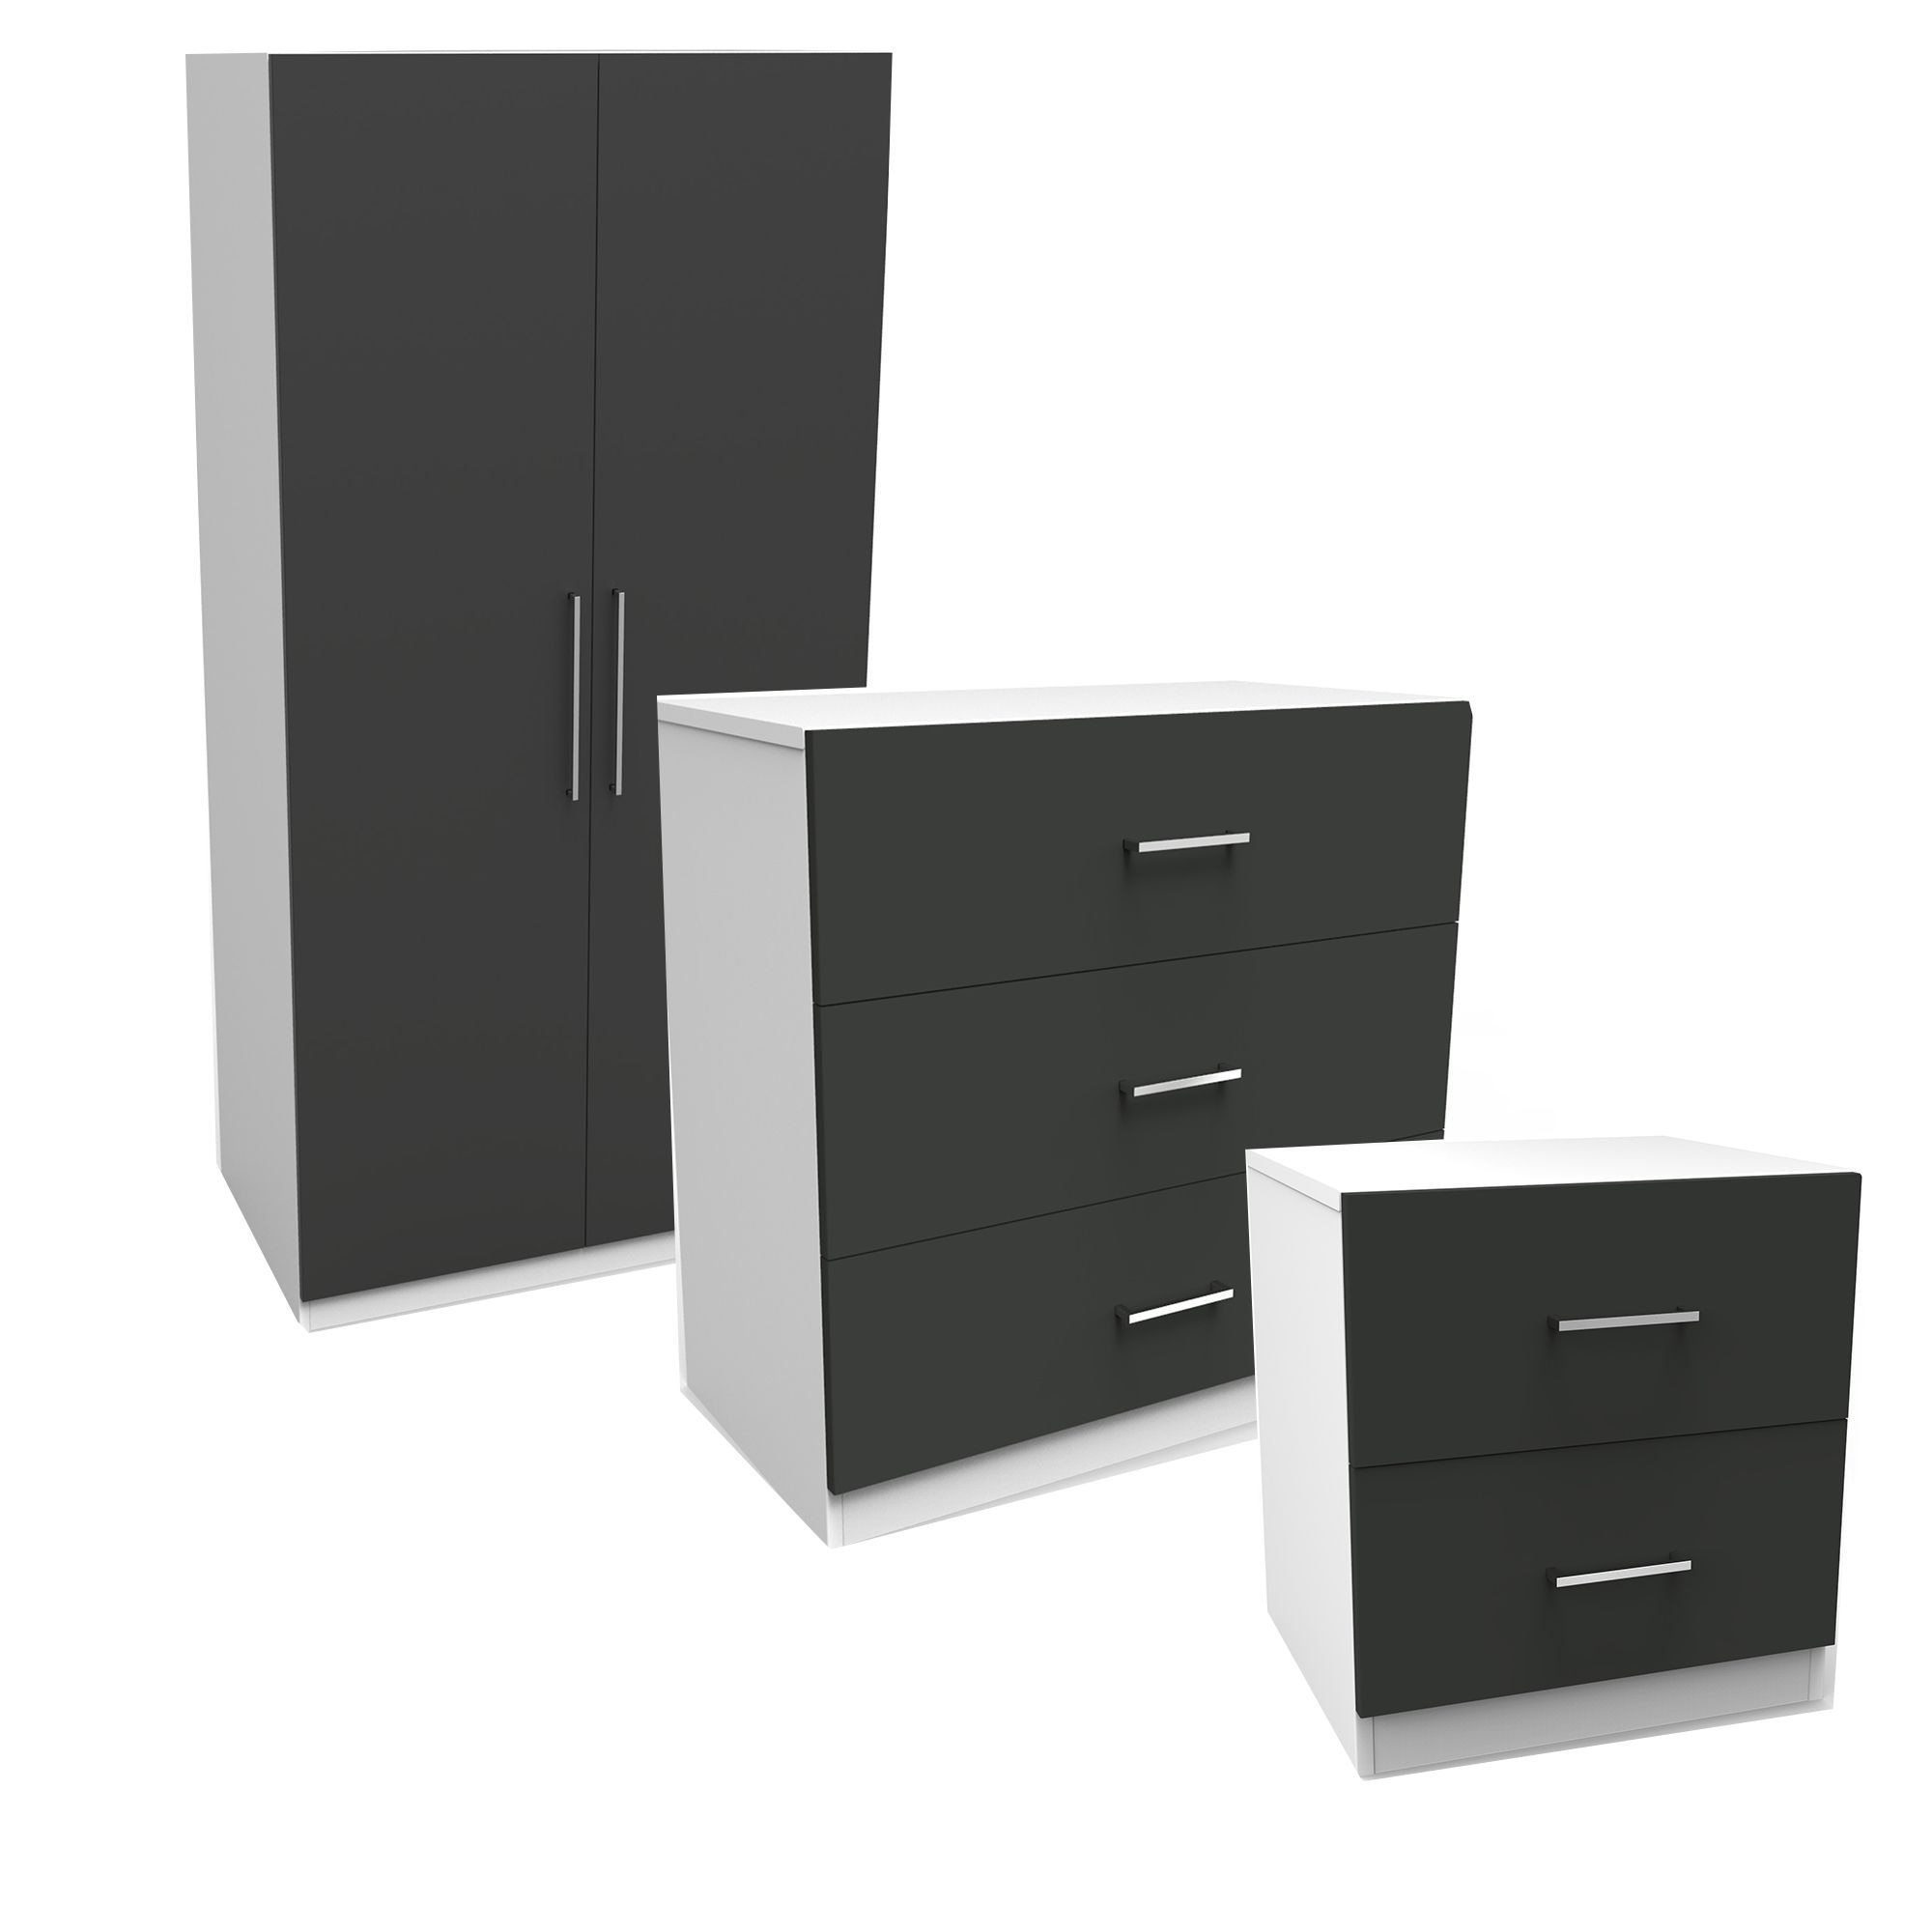 Best Darwin Gloss Anthracite White 3 Piece Bedroom Furniture With Pictures